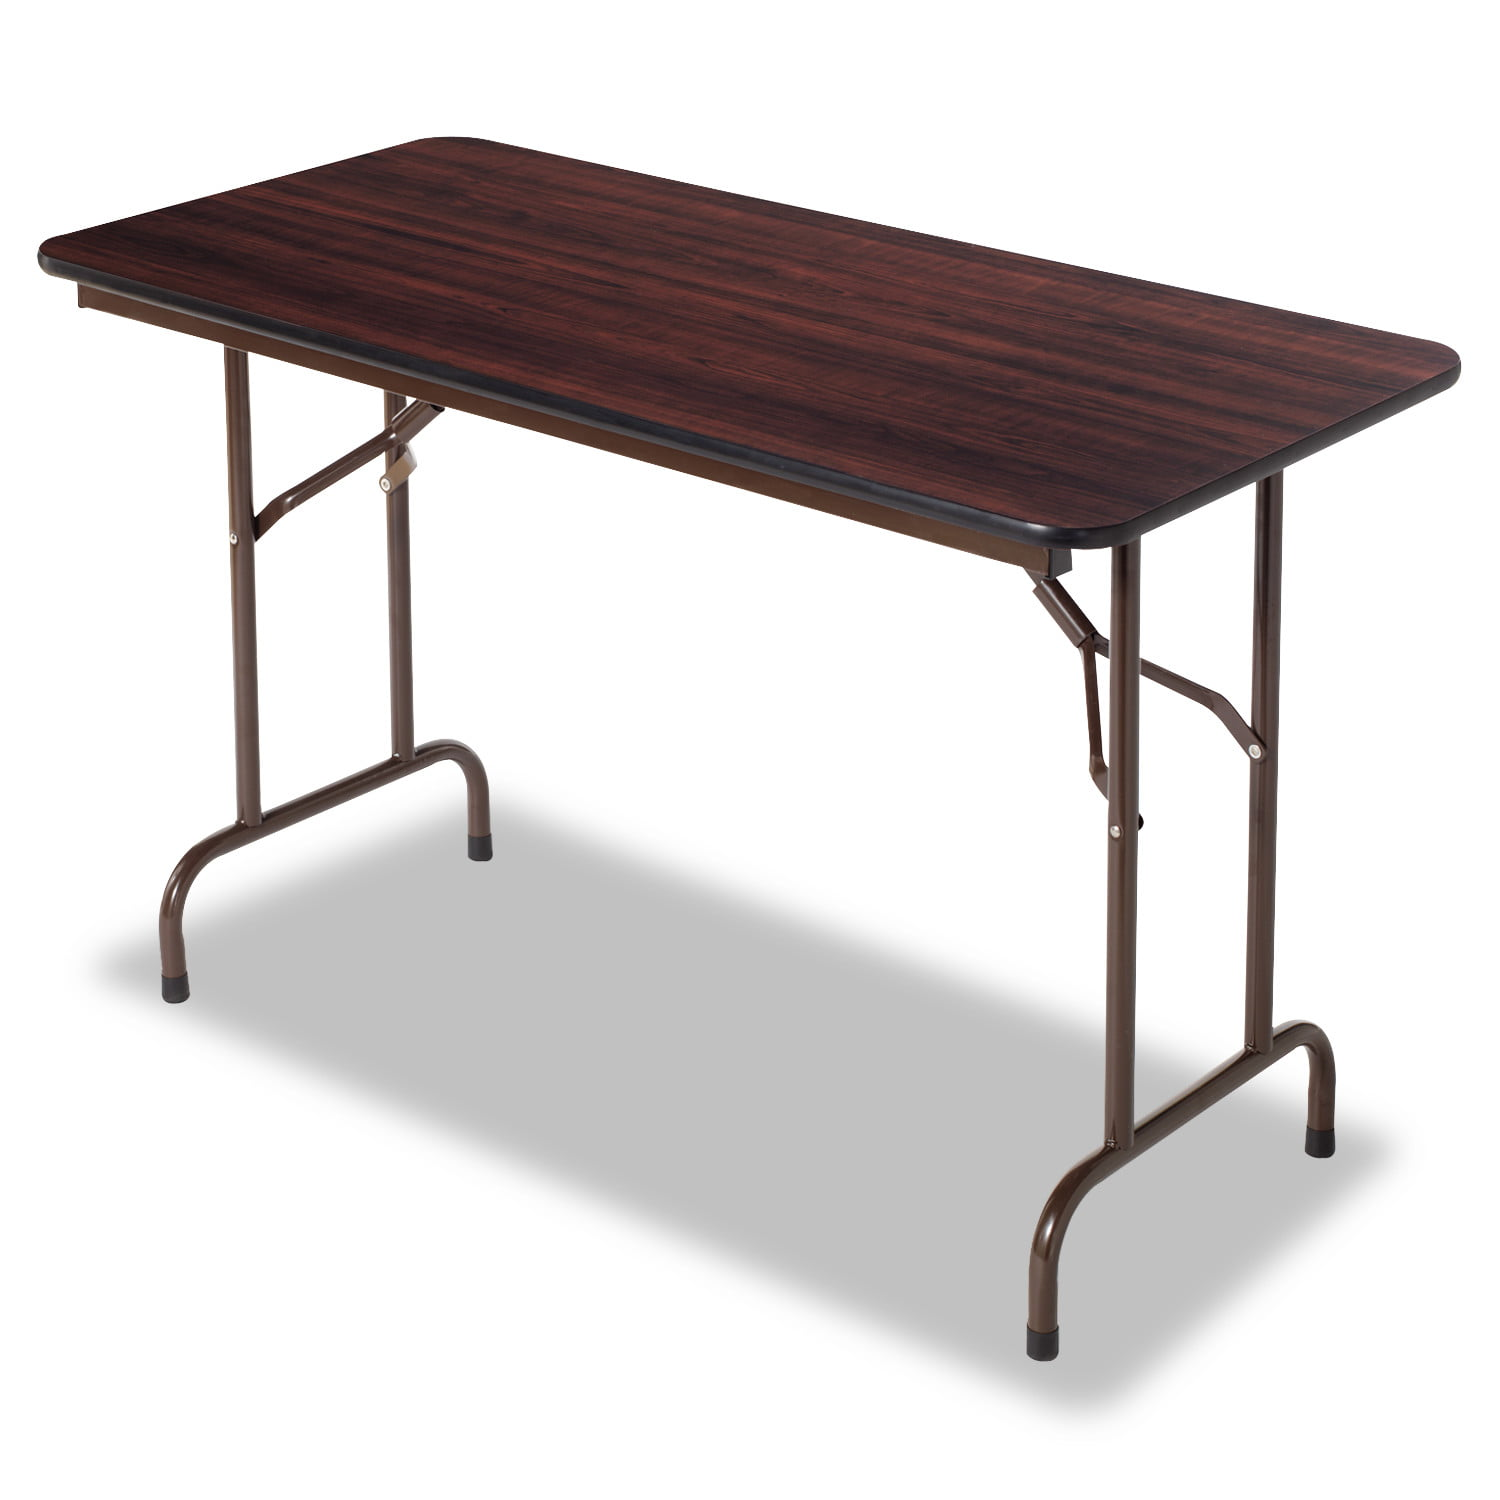 Alera Wood Folding Table, Rectangular, 48w x 24d x 29h, Walnut by ALERA